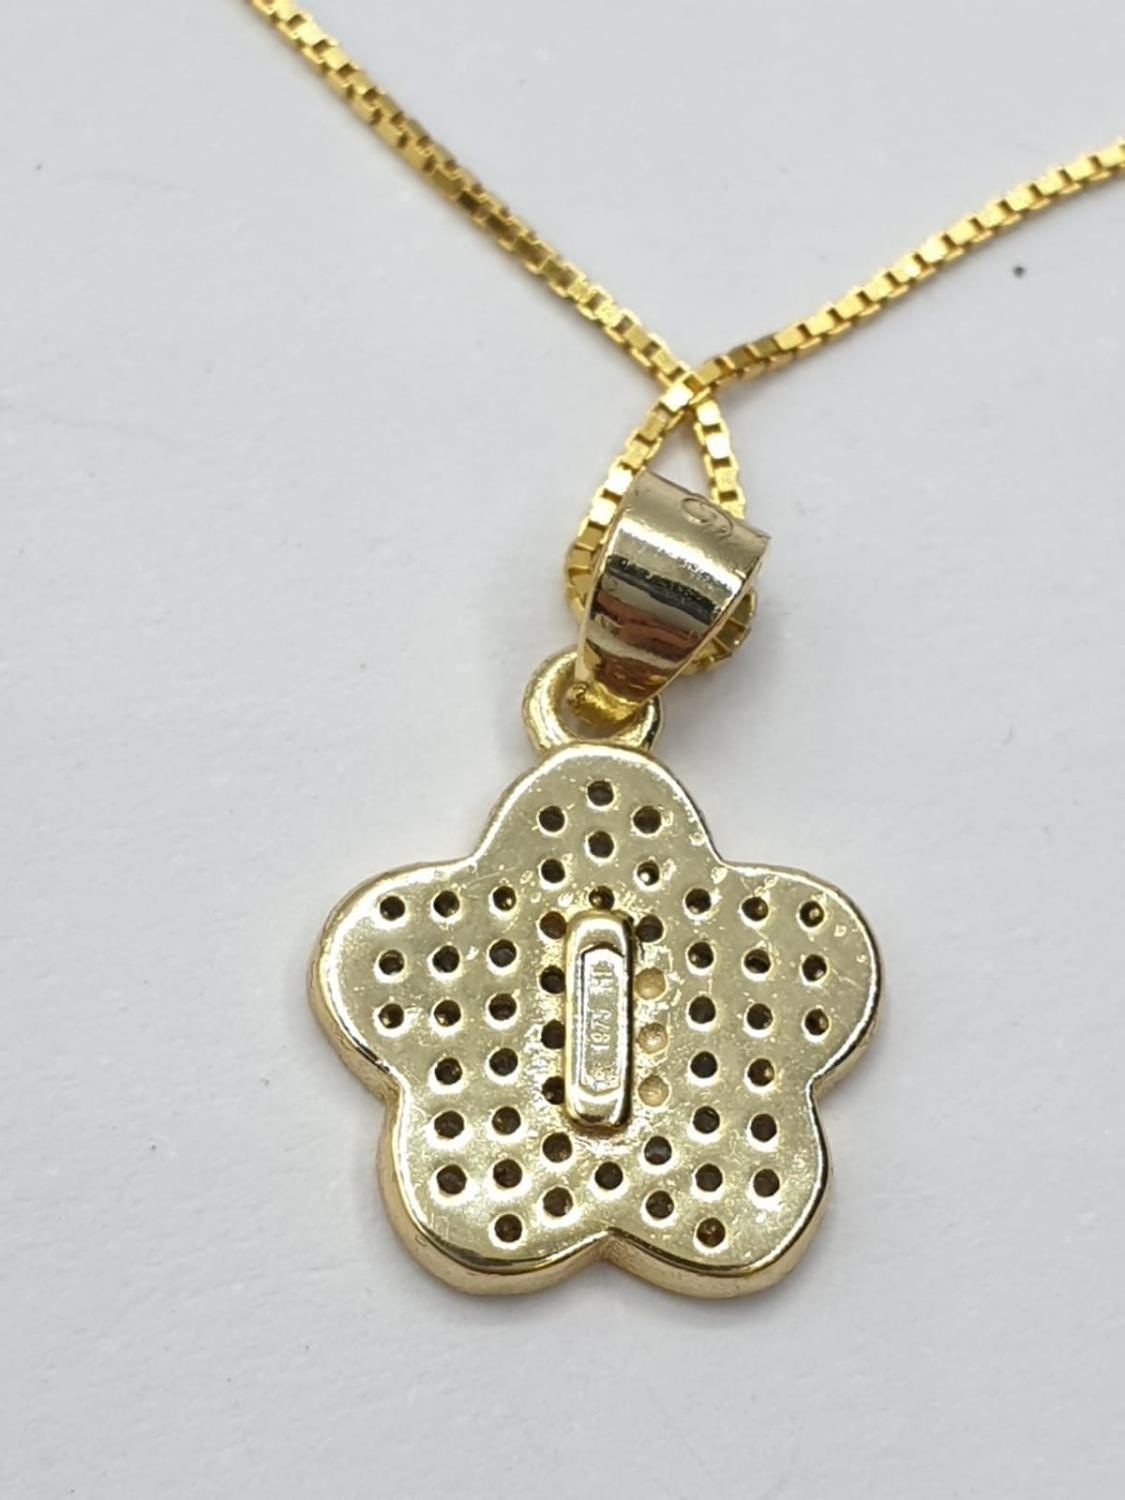 Gold plated silver set of PENDANT and matching EARRINGS. 3.7g 40cm chain. - Image 7 of 7